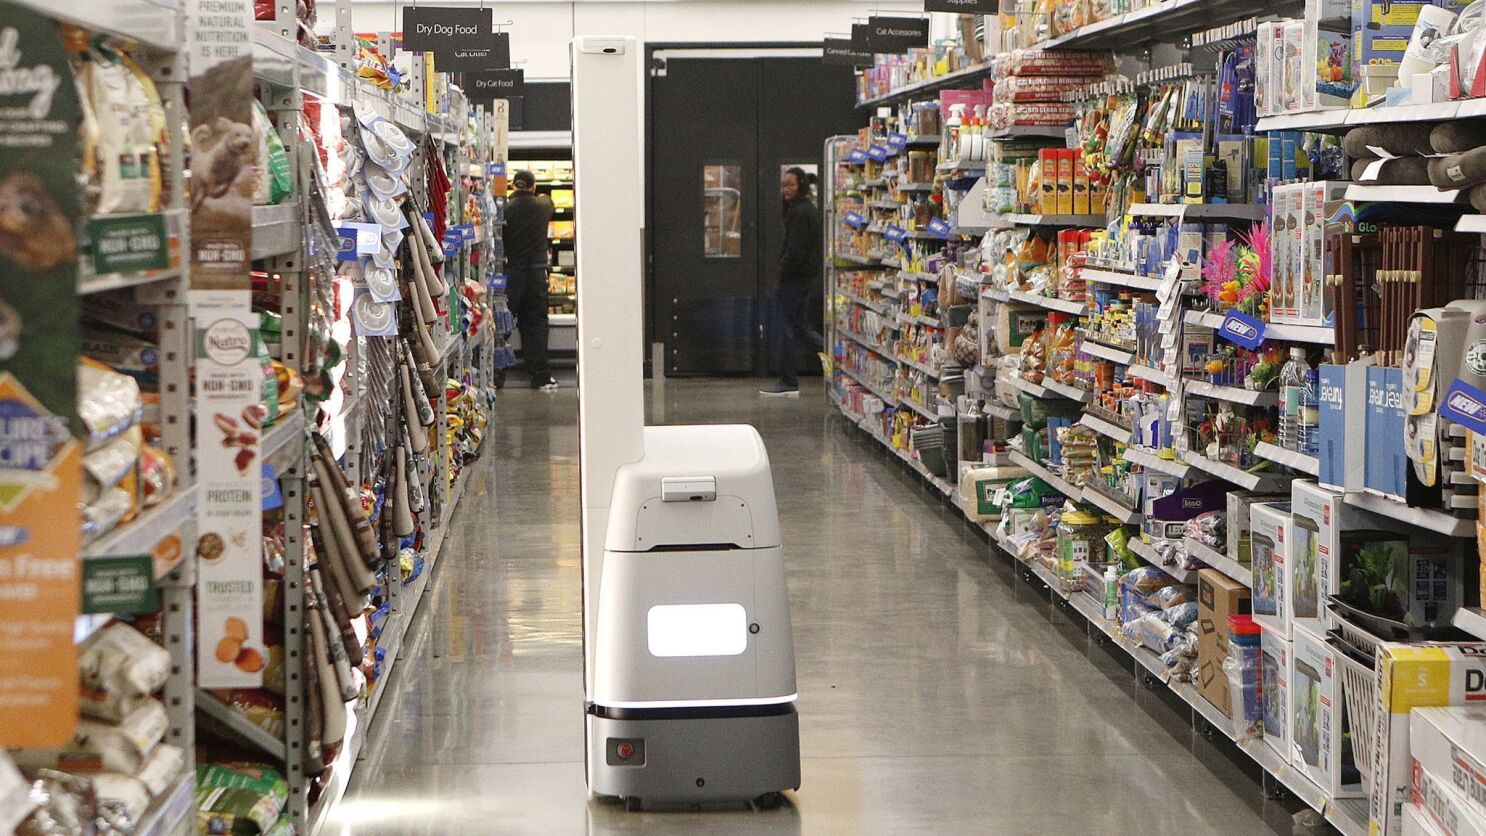 Walmart Tests New Robot At Burbank Store Los Angeles Times